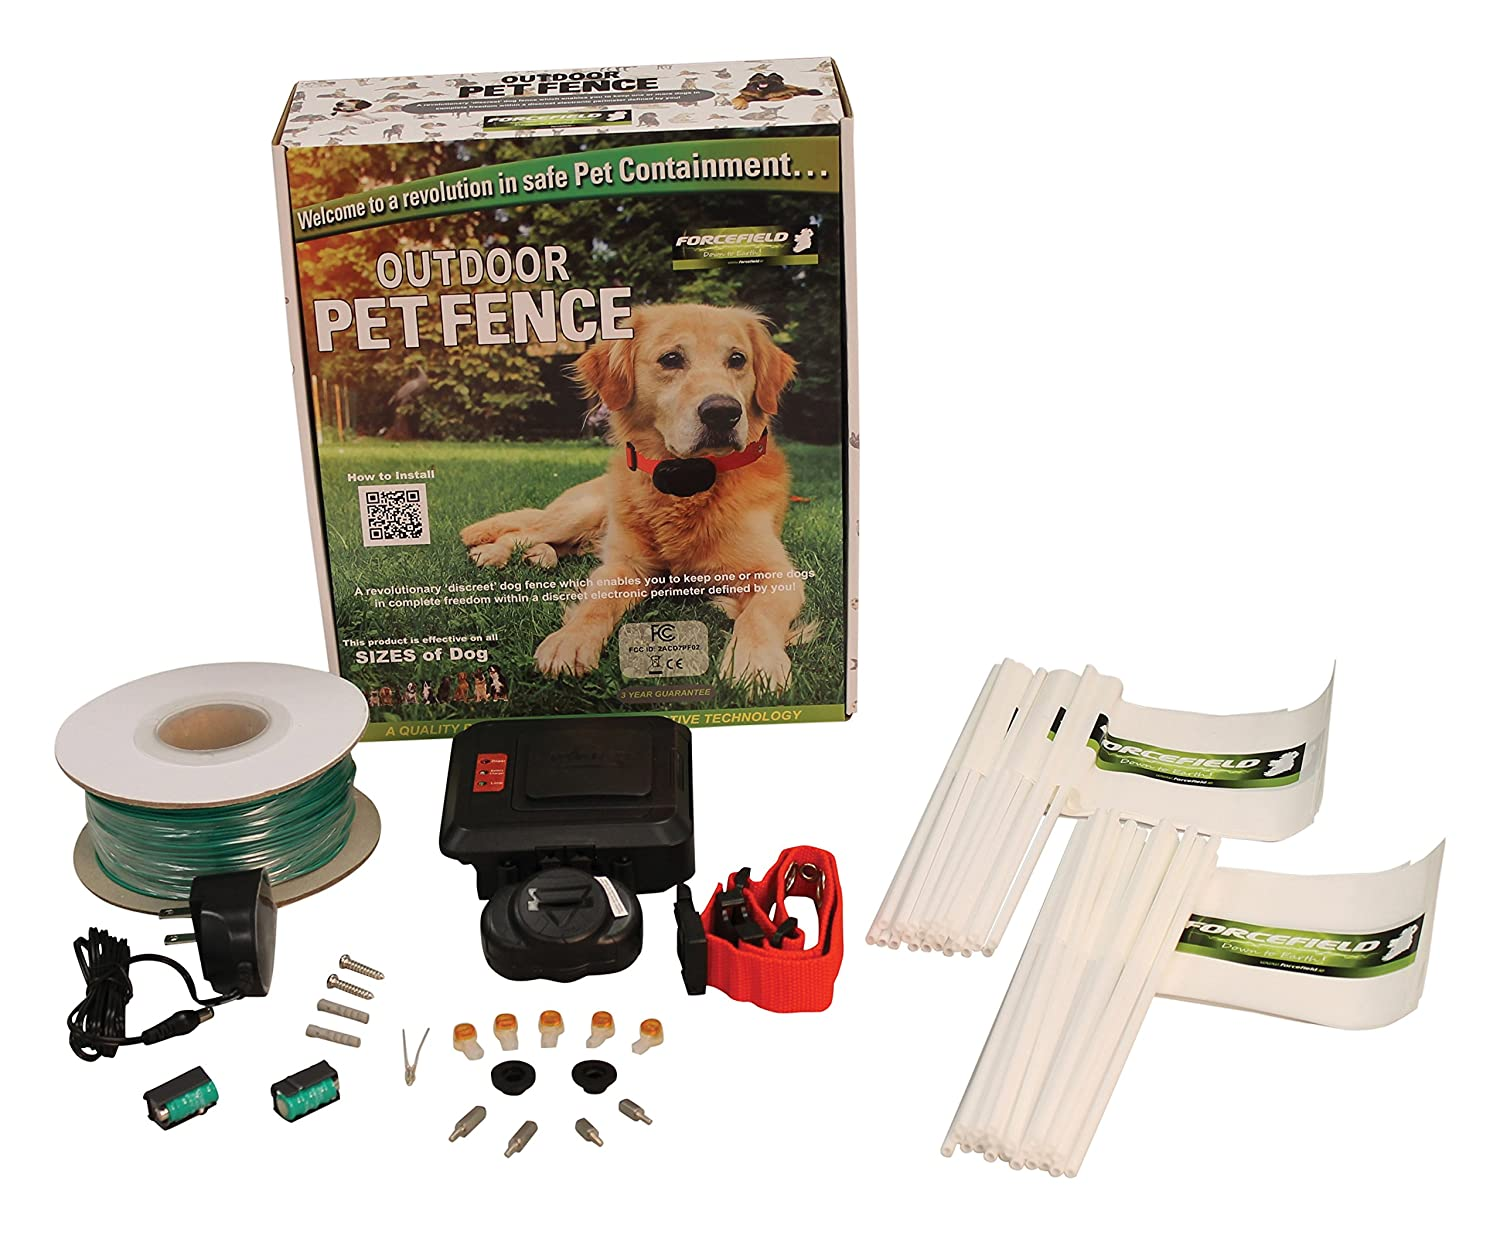 Ideal Pet Products Forcefield Outdoor Pet Fence, Pet Containment System for Dogs